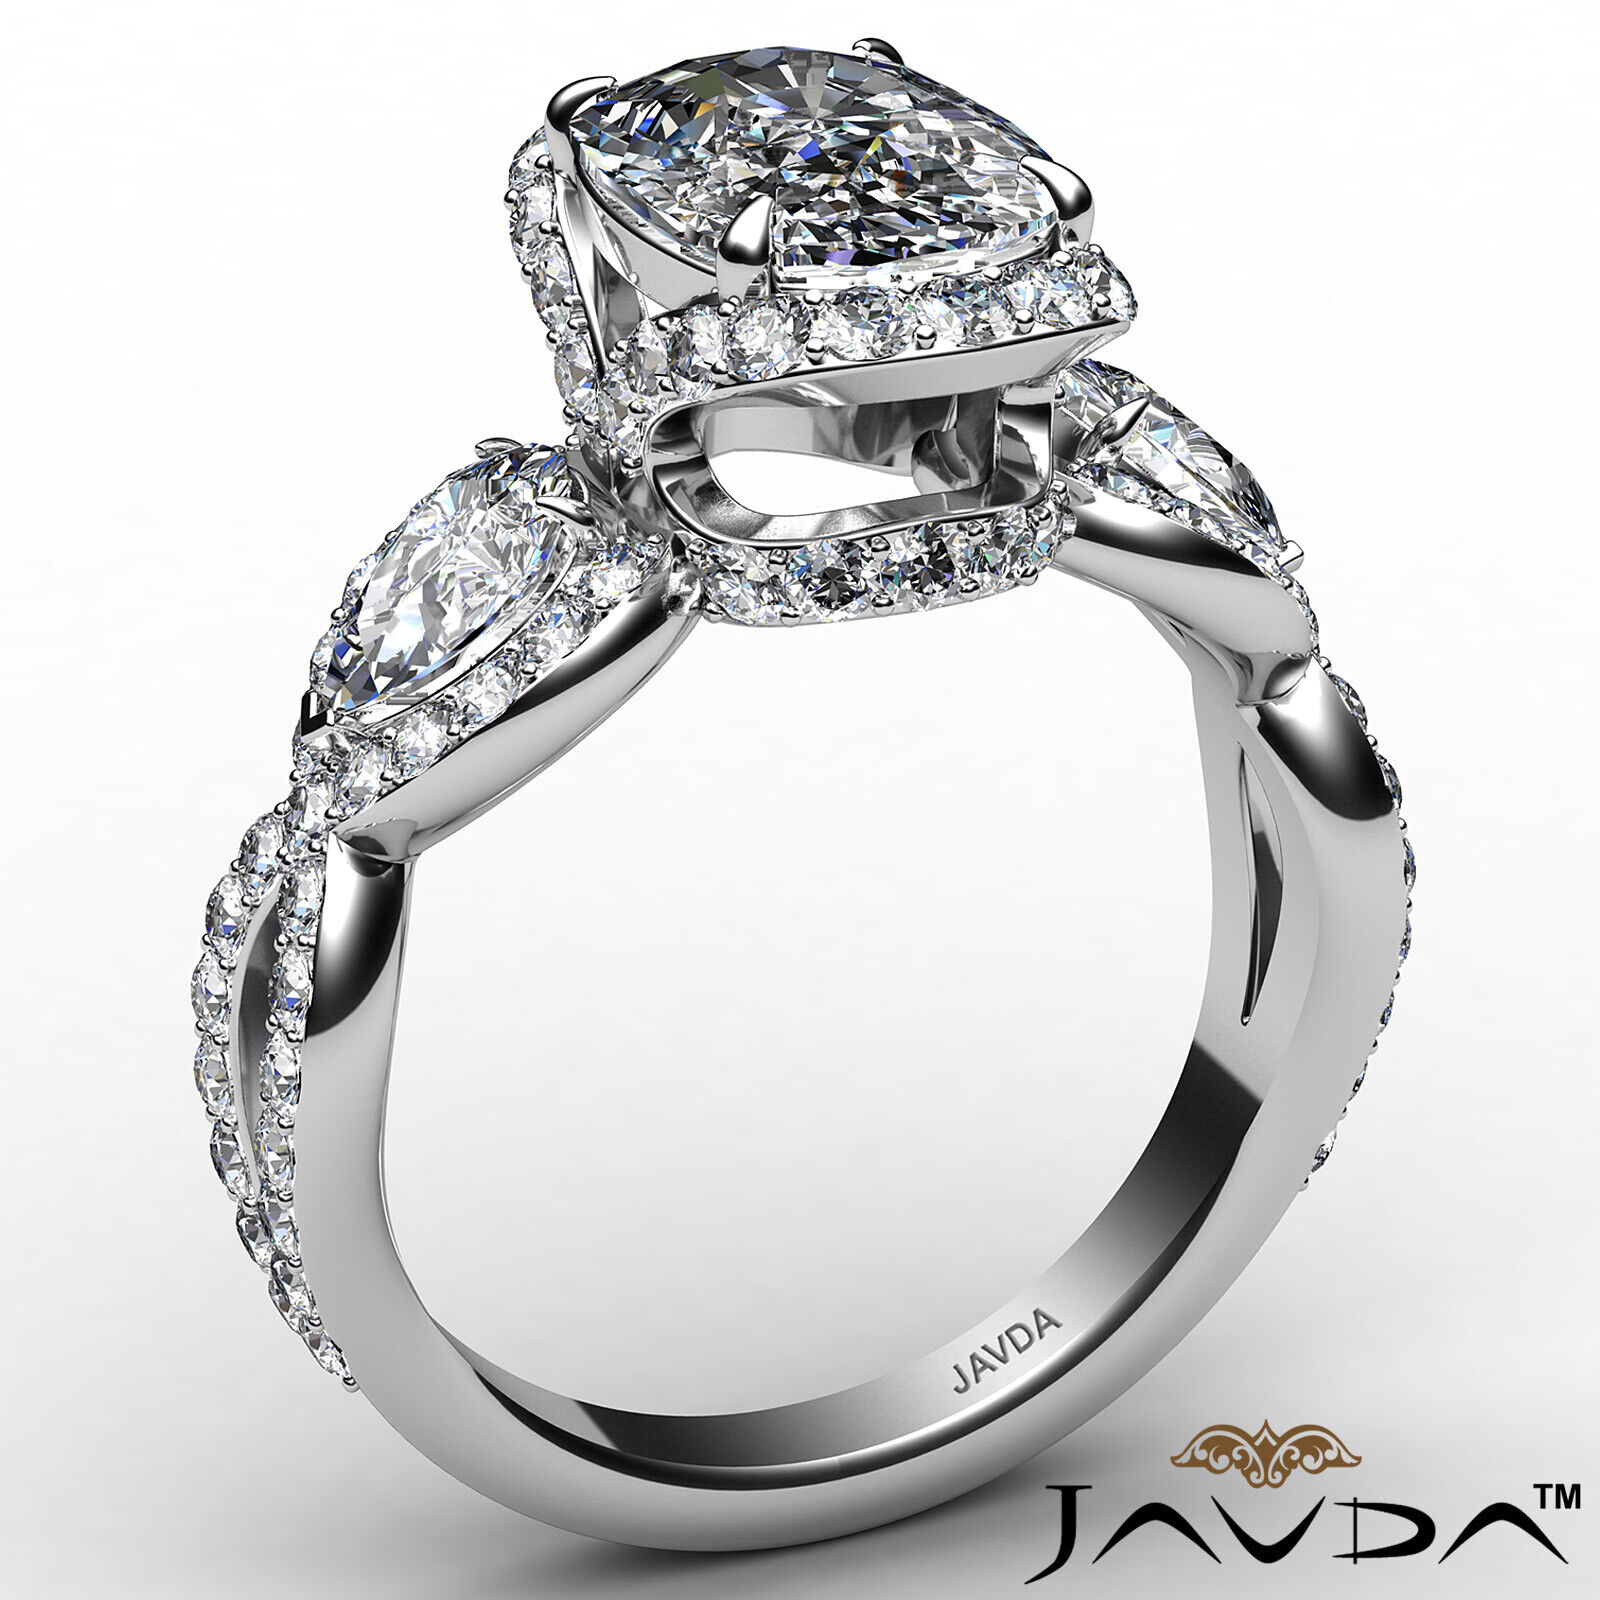 Halo Cushion Diamond Engagement Ring GIA Certified J Color & VS2 clarity 2.4 ctw 3